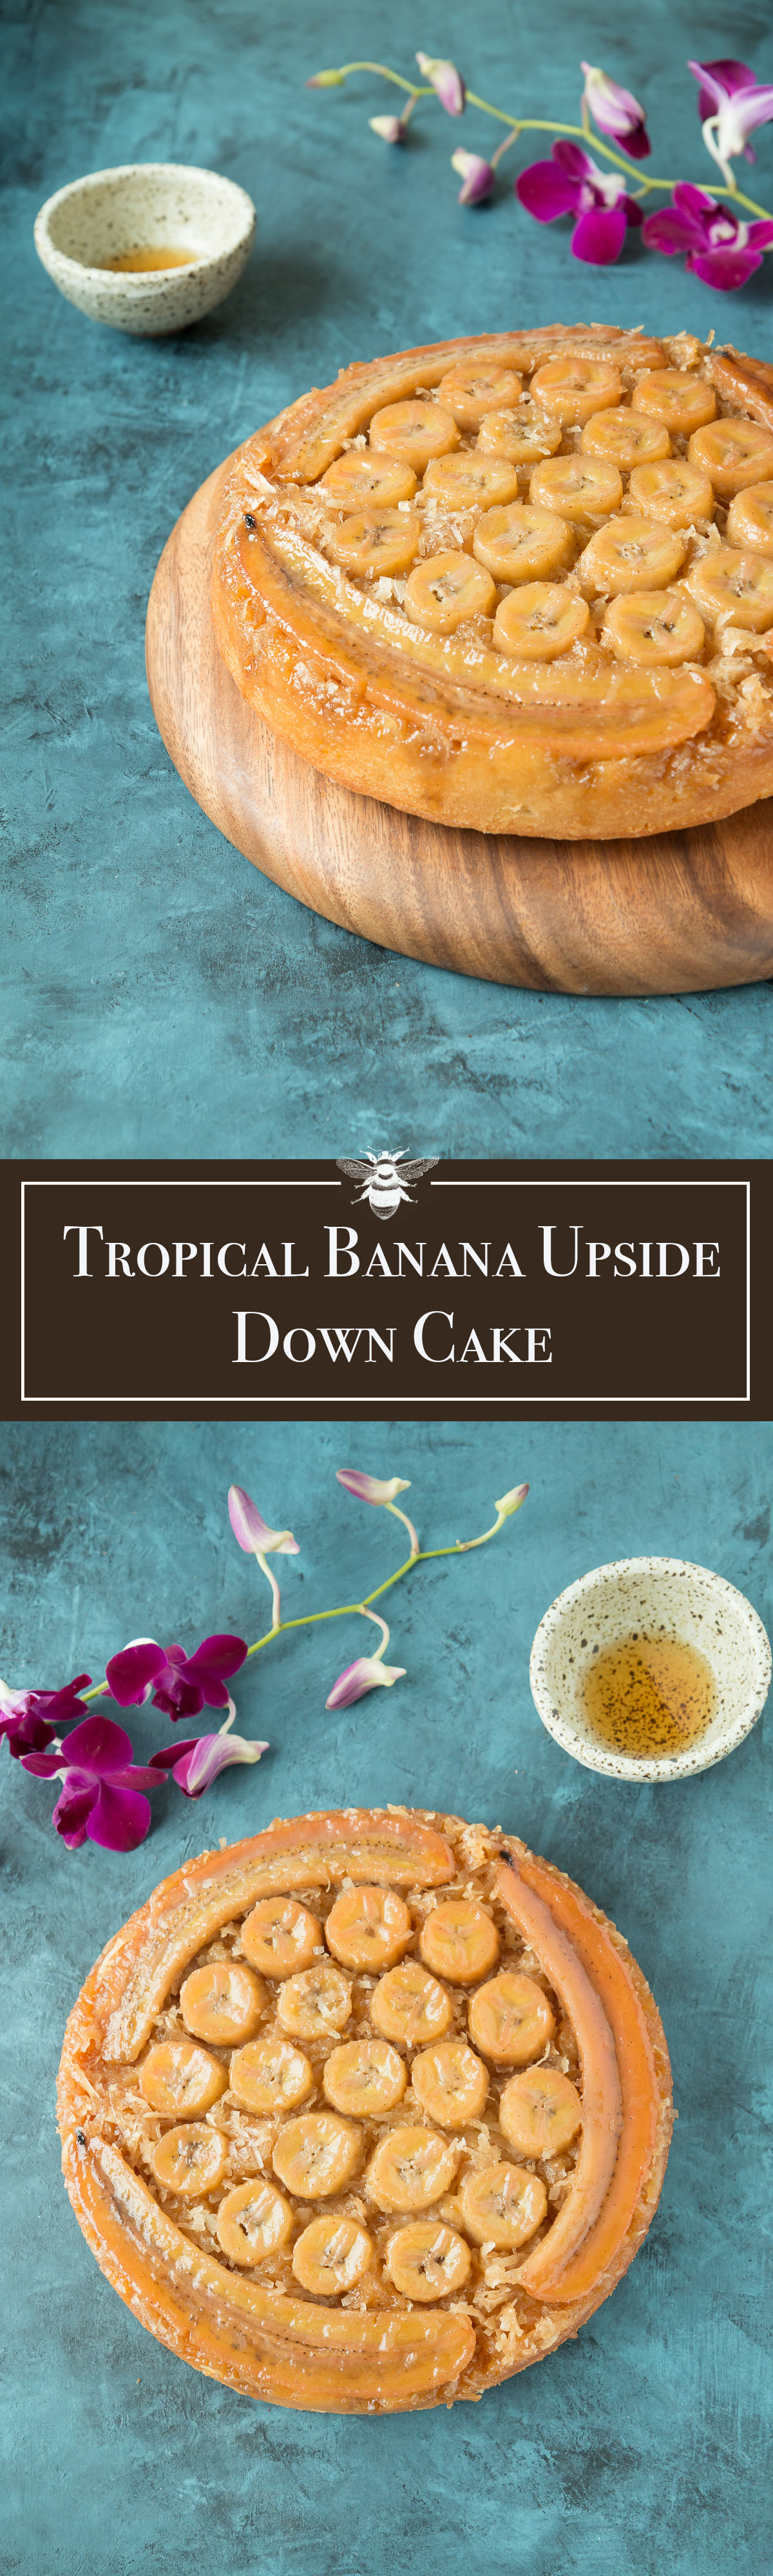 Tropical Banana Upside Down Cake